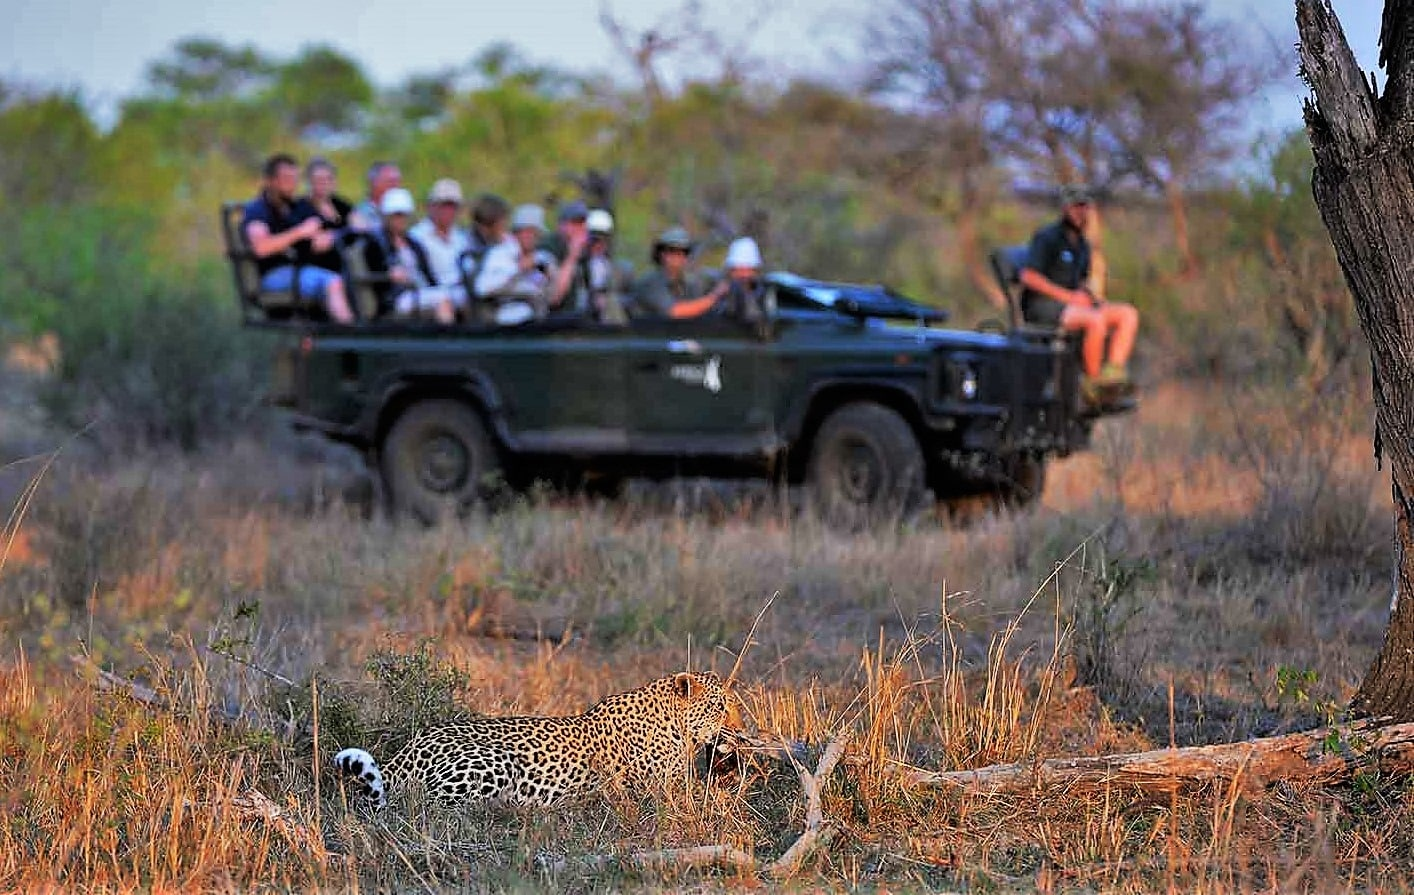 Leopard on game drive at Africa on Foot